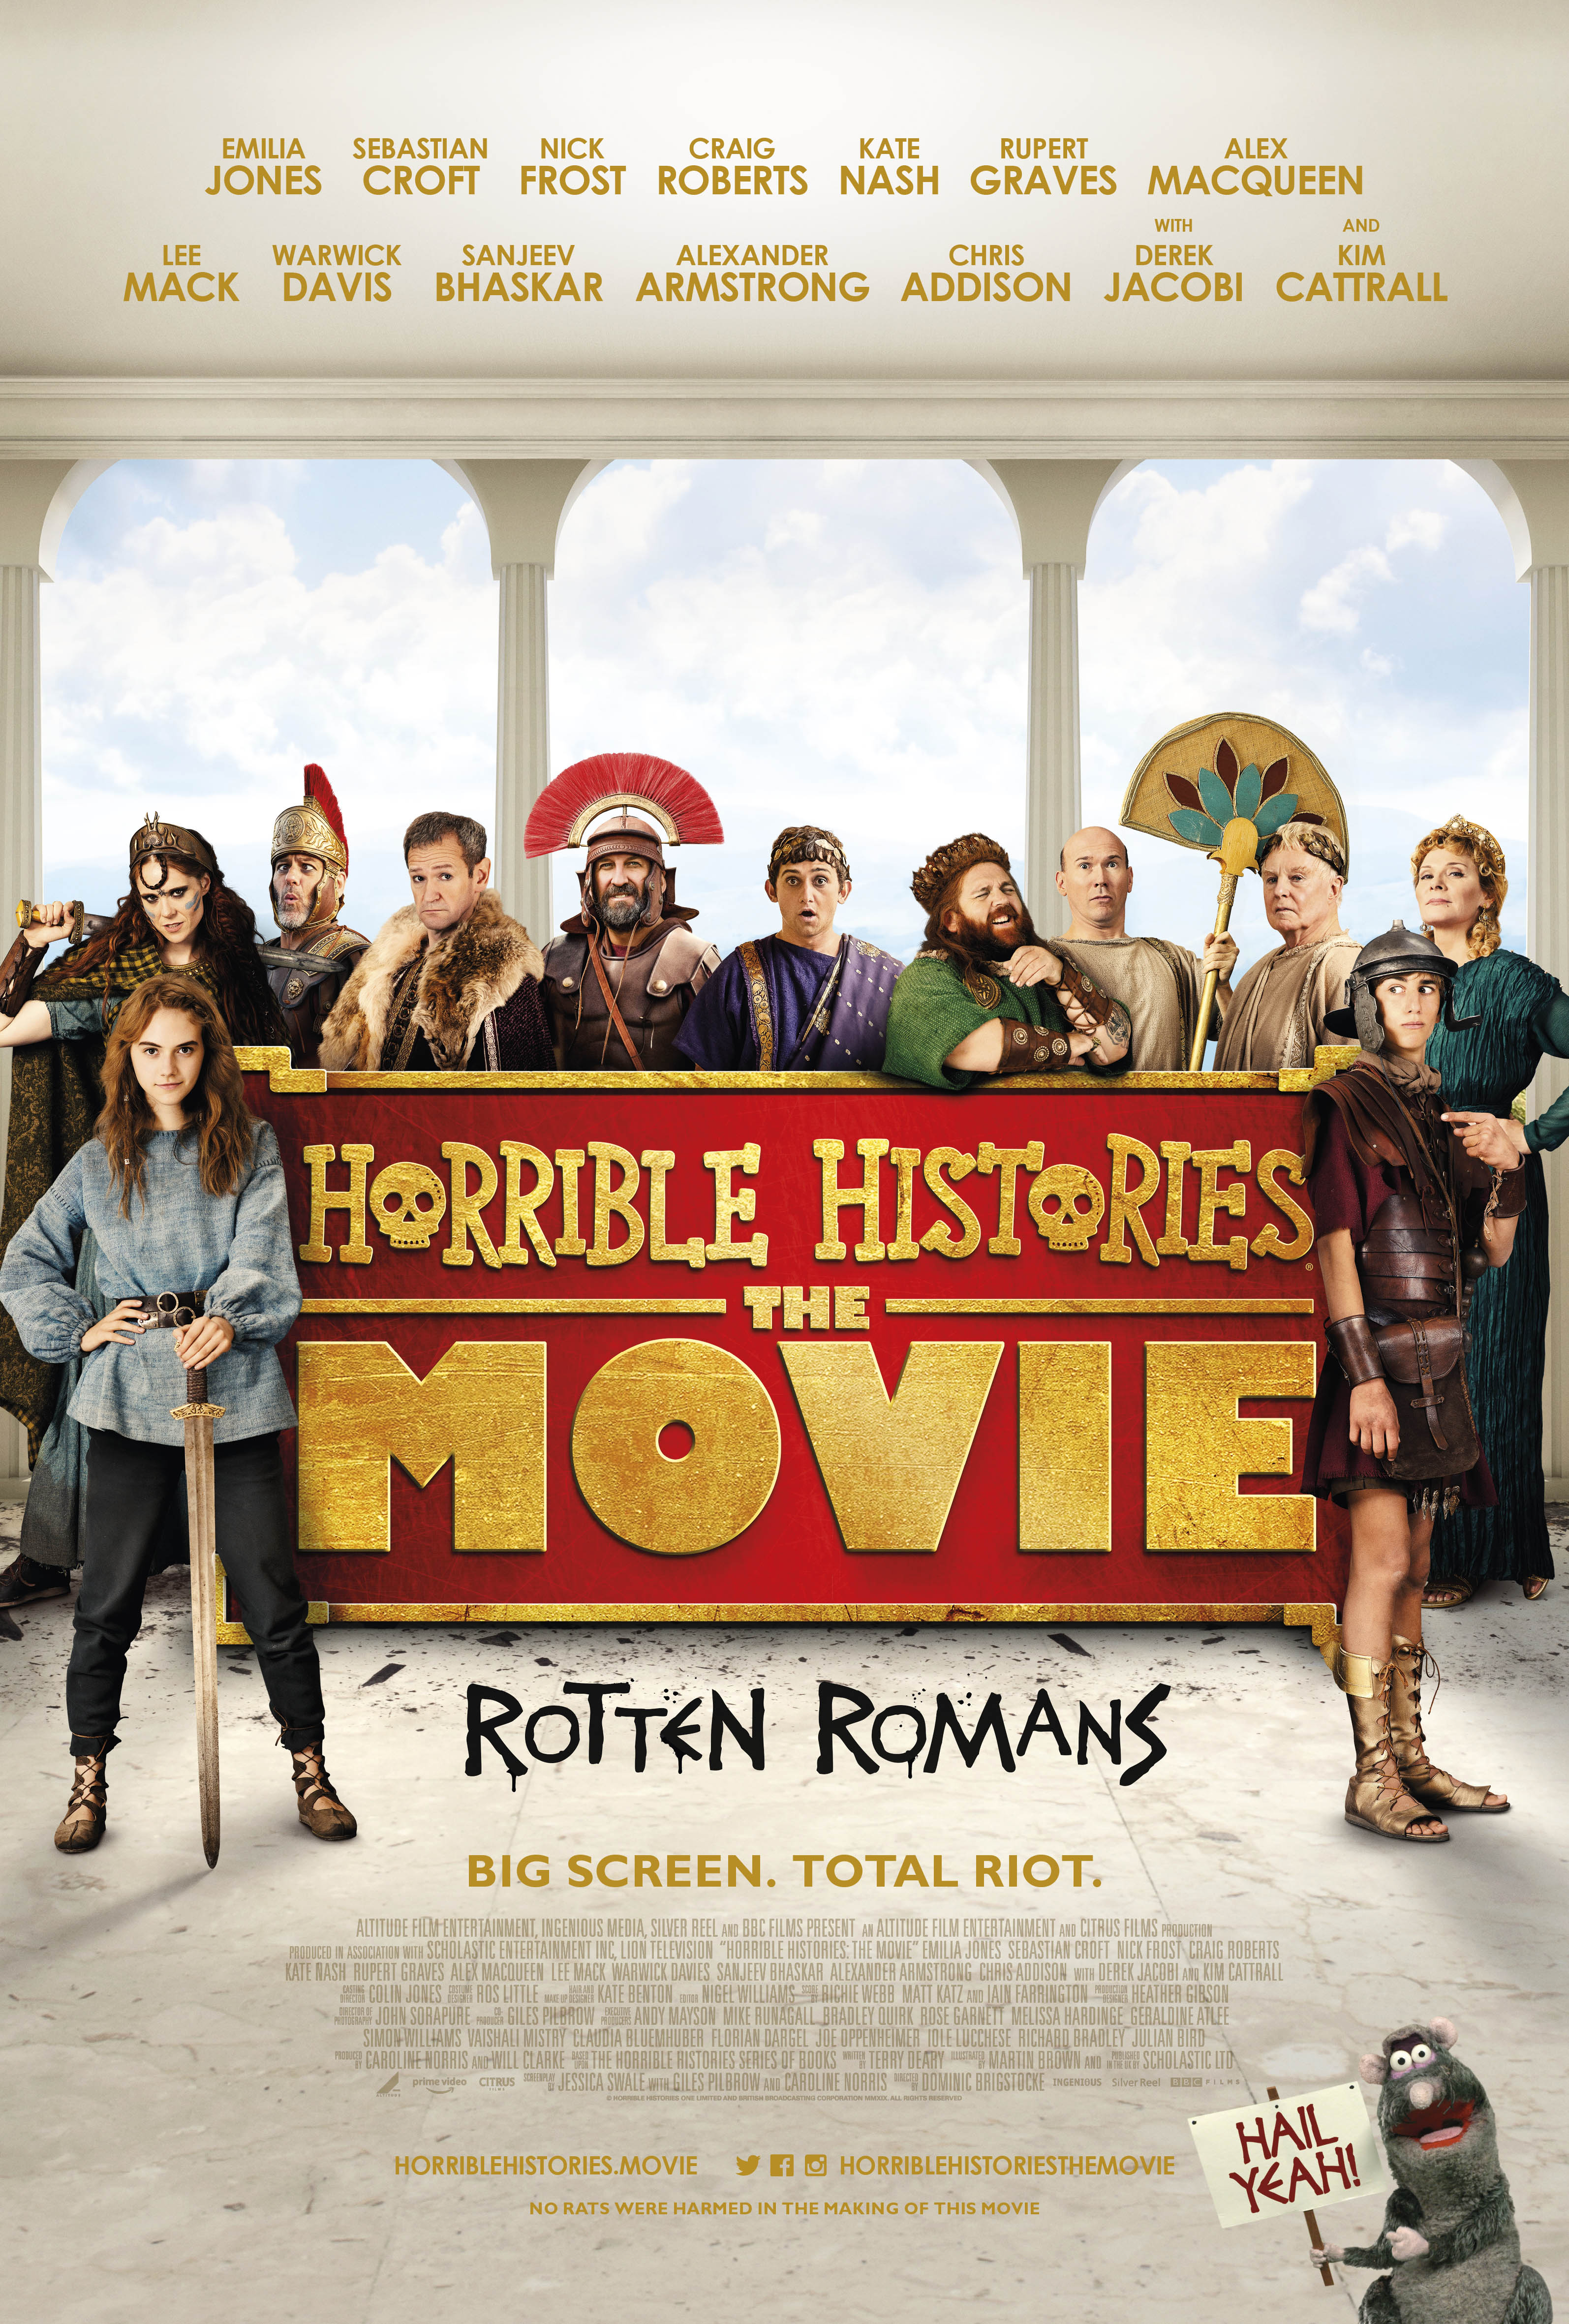 Horrible Histories The Movie Rotten Romans 2019 Imdb